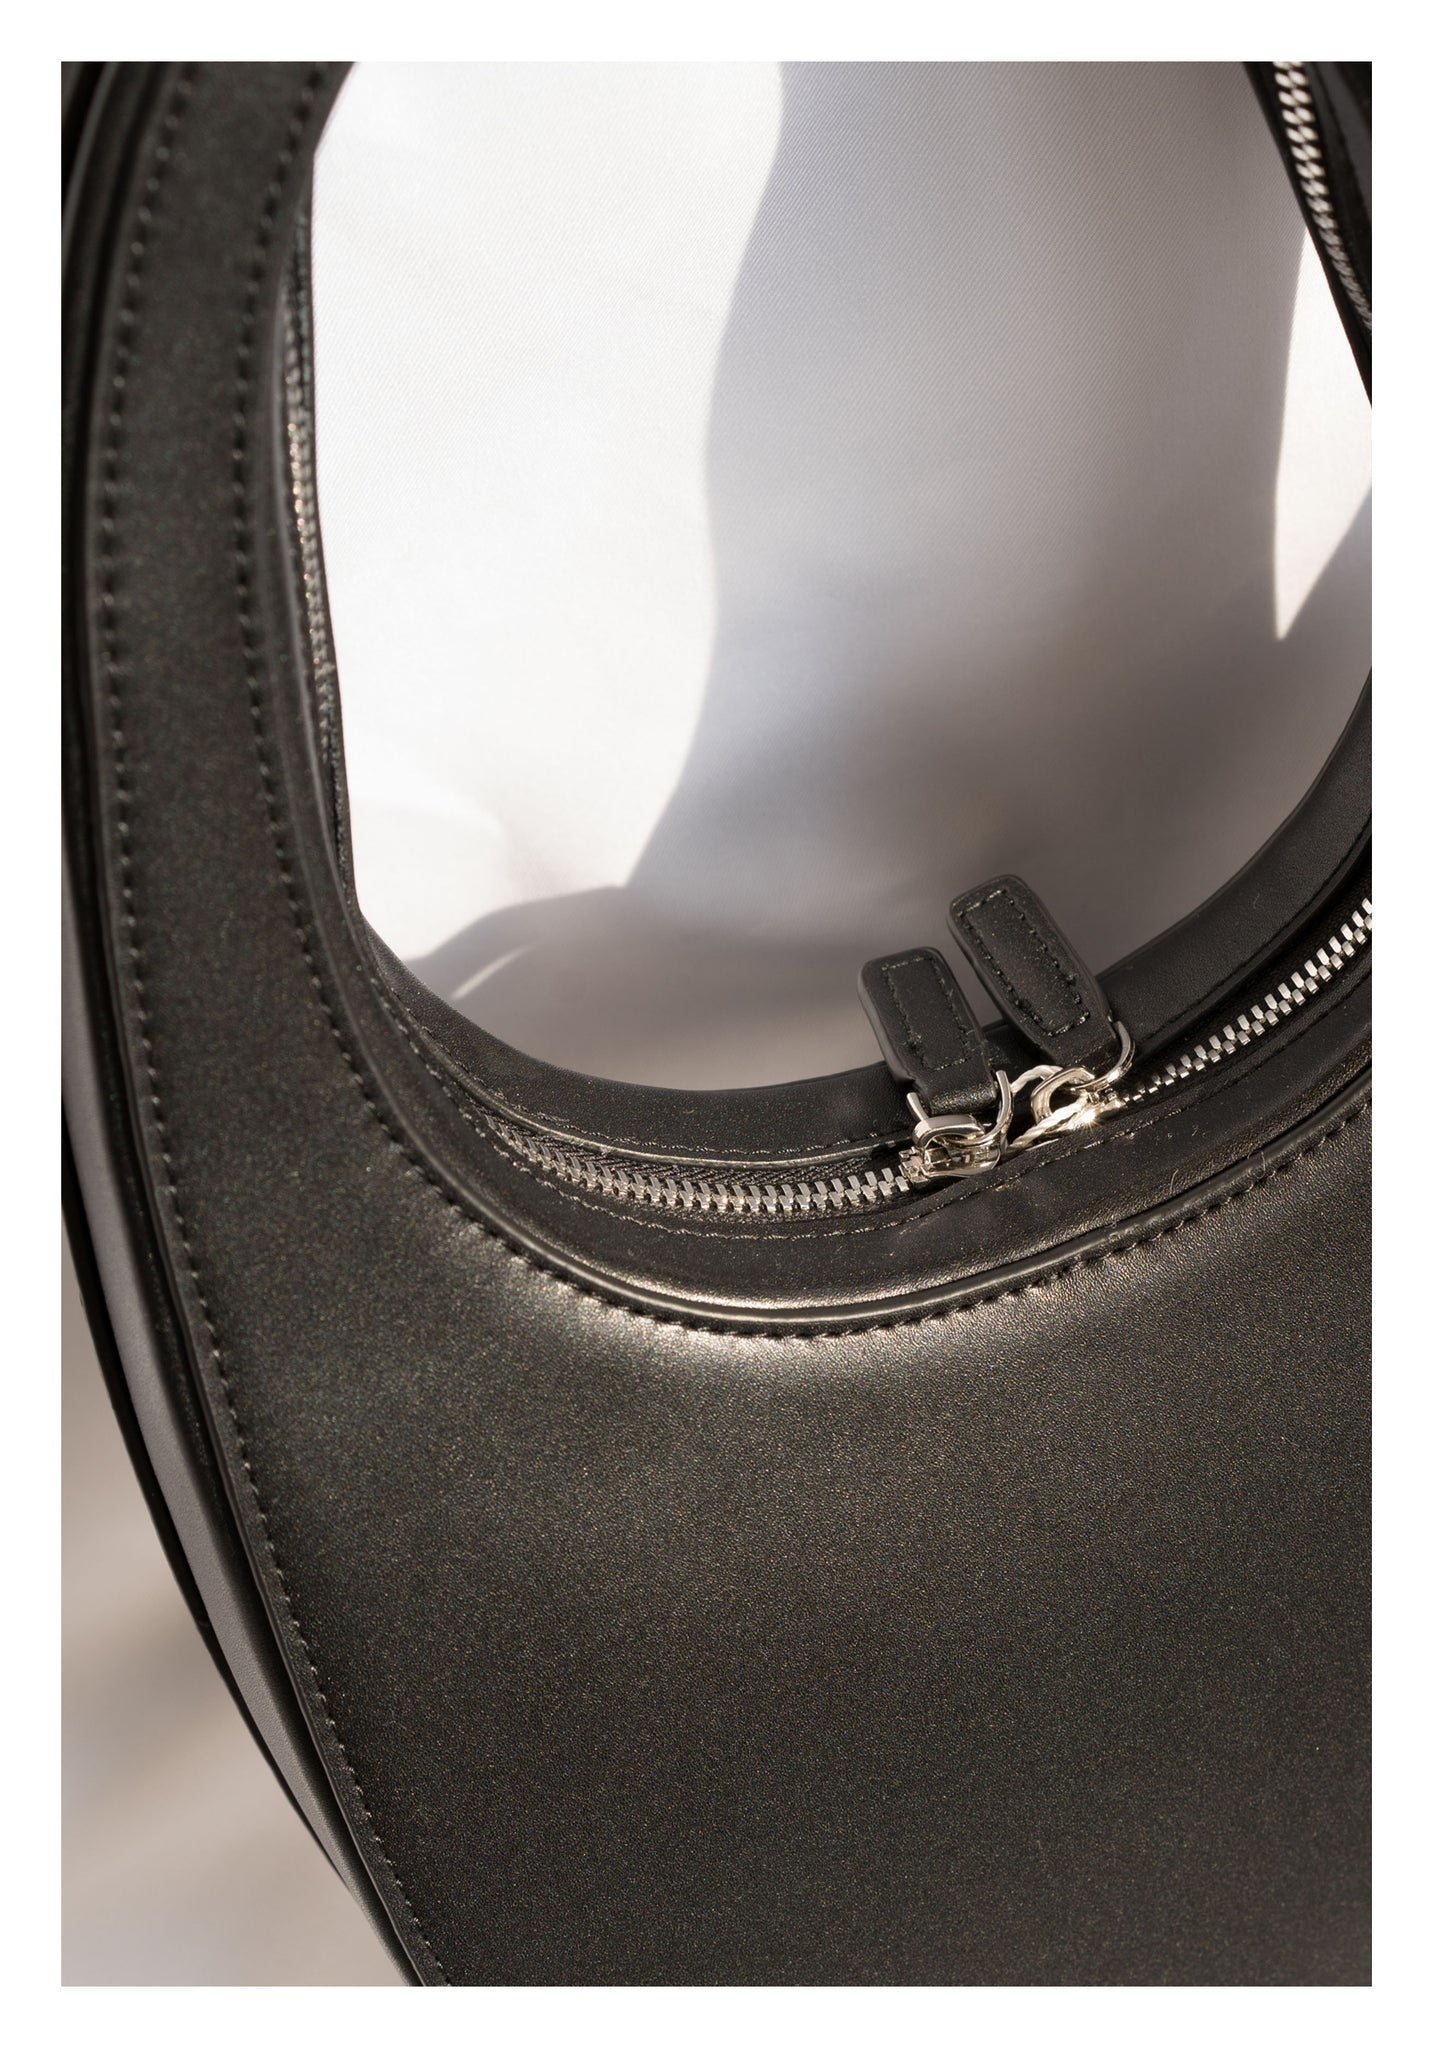 Oval Egg Leather Bag Black - whoami